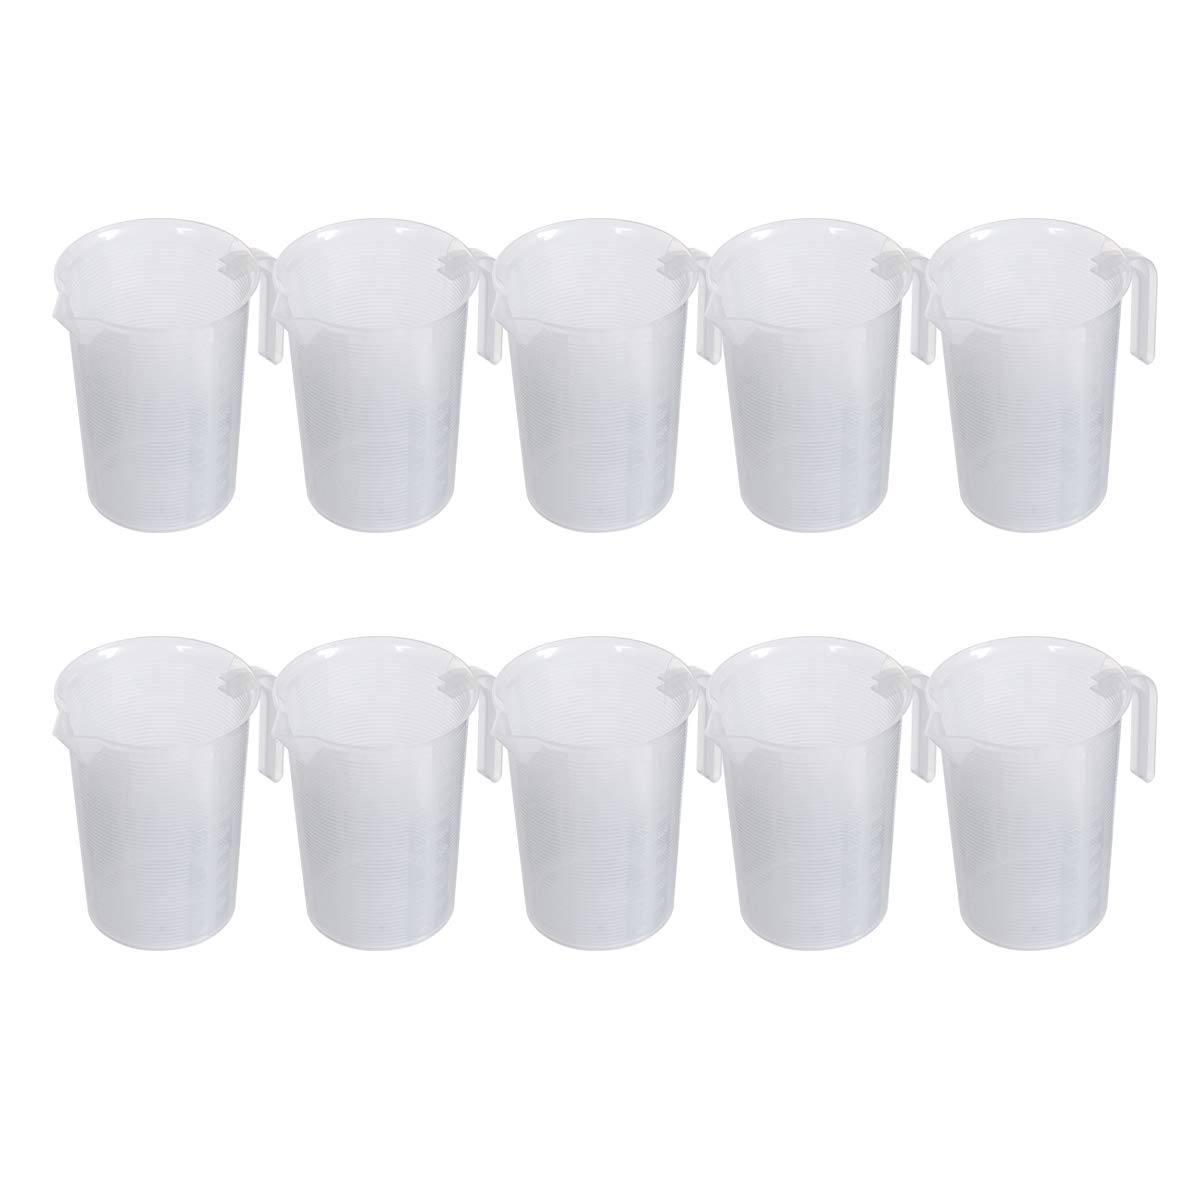 Saim 1000ml Plastic Graduated Pitcher Measuring Cups BPA Free Liquid Measuring Containers Kitchen Utensils Gadgets Measuring Tools with V-Shaped Spout & Measurement for Baker Pastry Cook, 10pcs by Saim